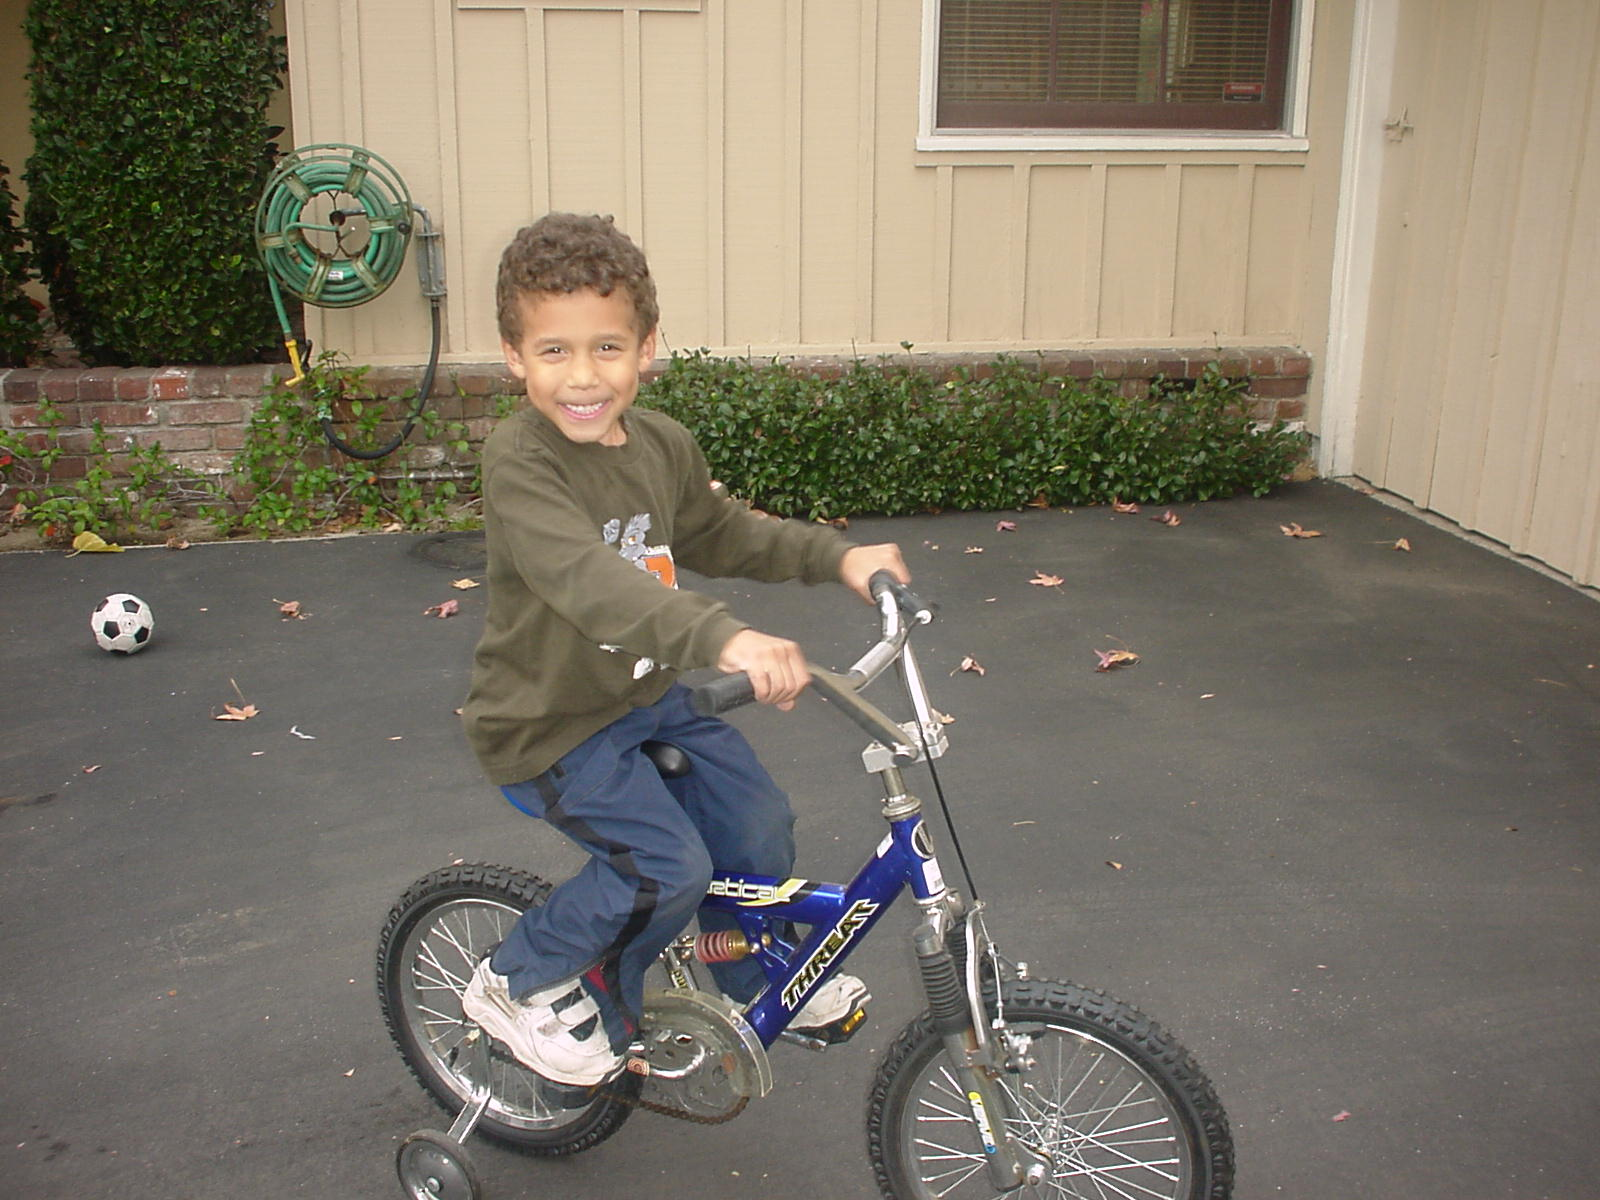 Gabe on a bike